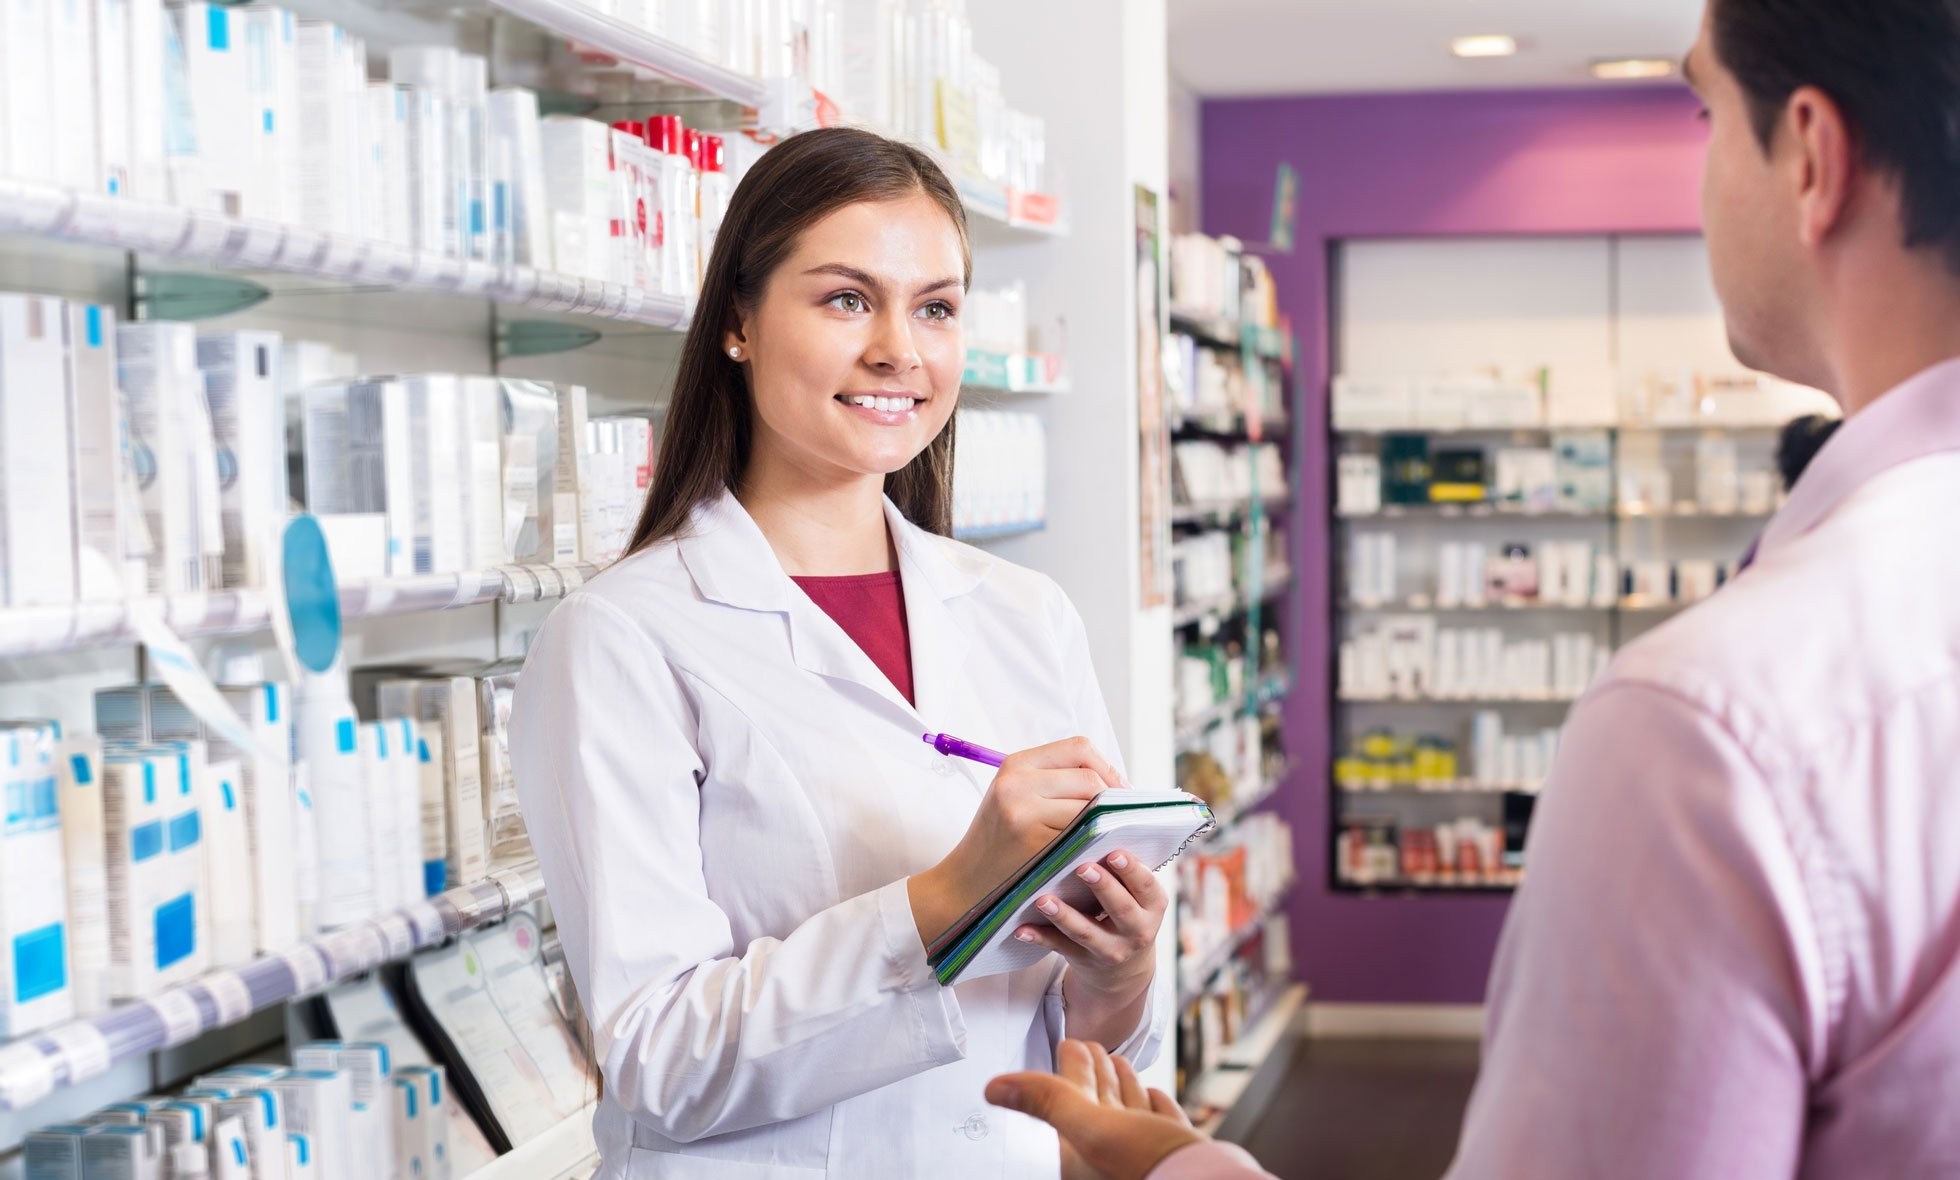 Discover Information About Pharmacy Jobs - Pharmacy is Right for Me